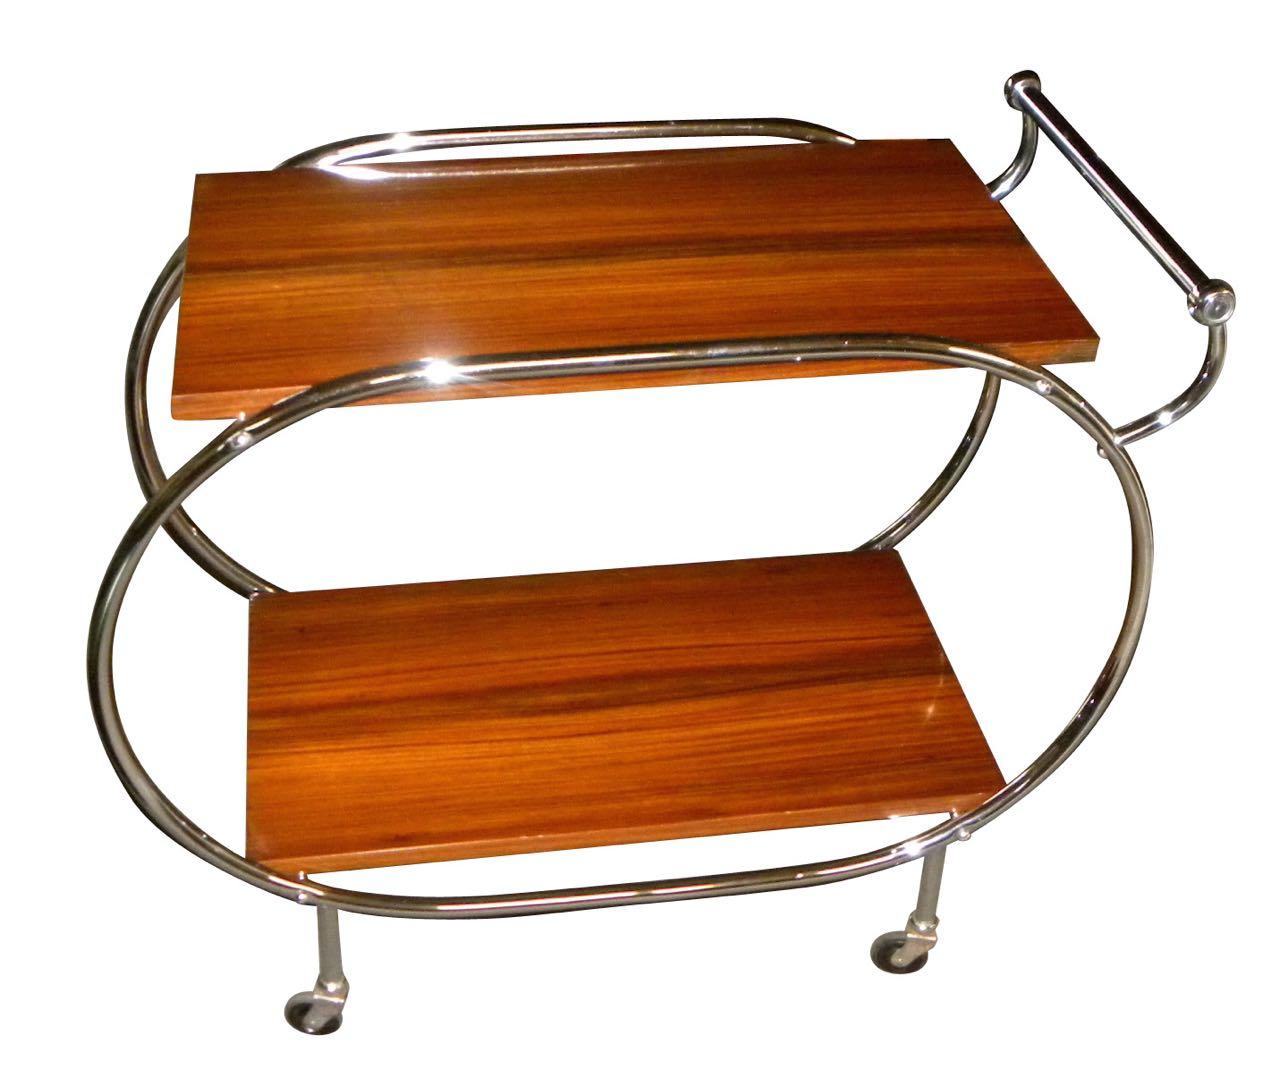 Design Art Deco Furniture art deco furniture sold bars collection rolling bar cart restored